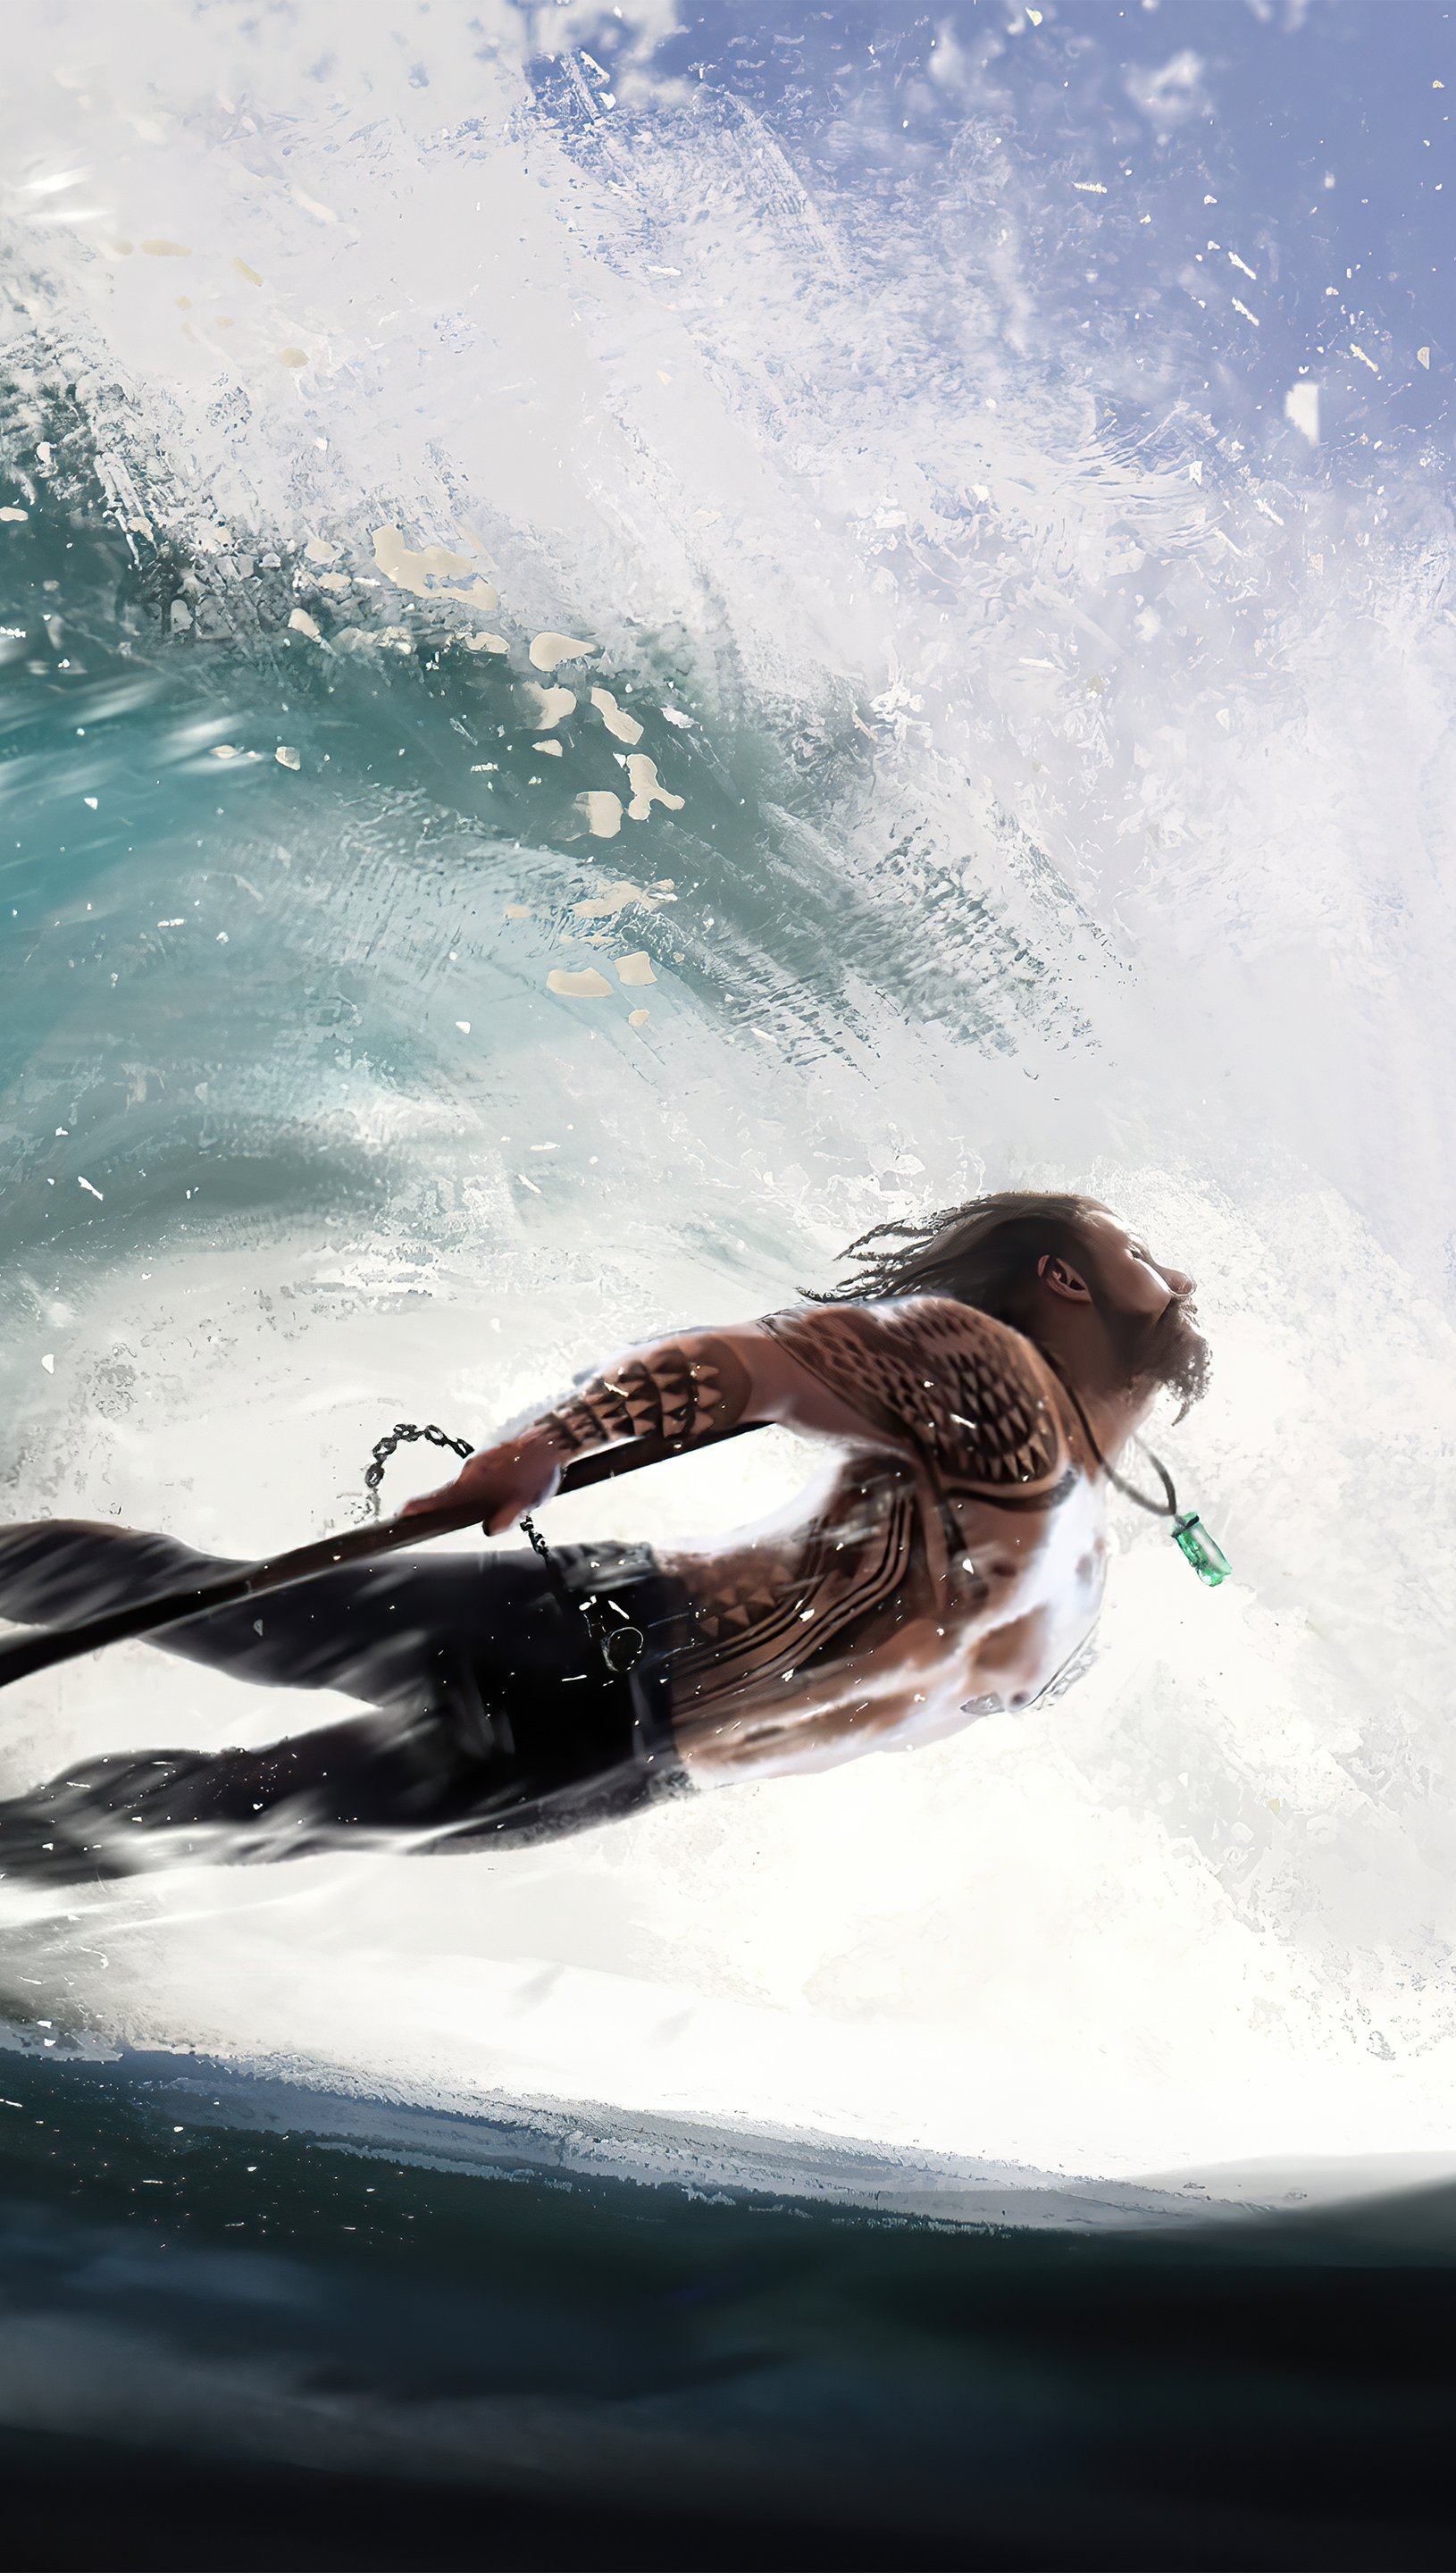 Wallpaper Aquaman within wave Vertical